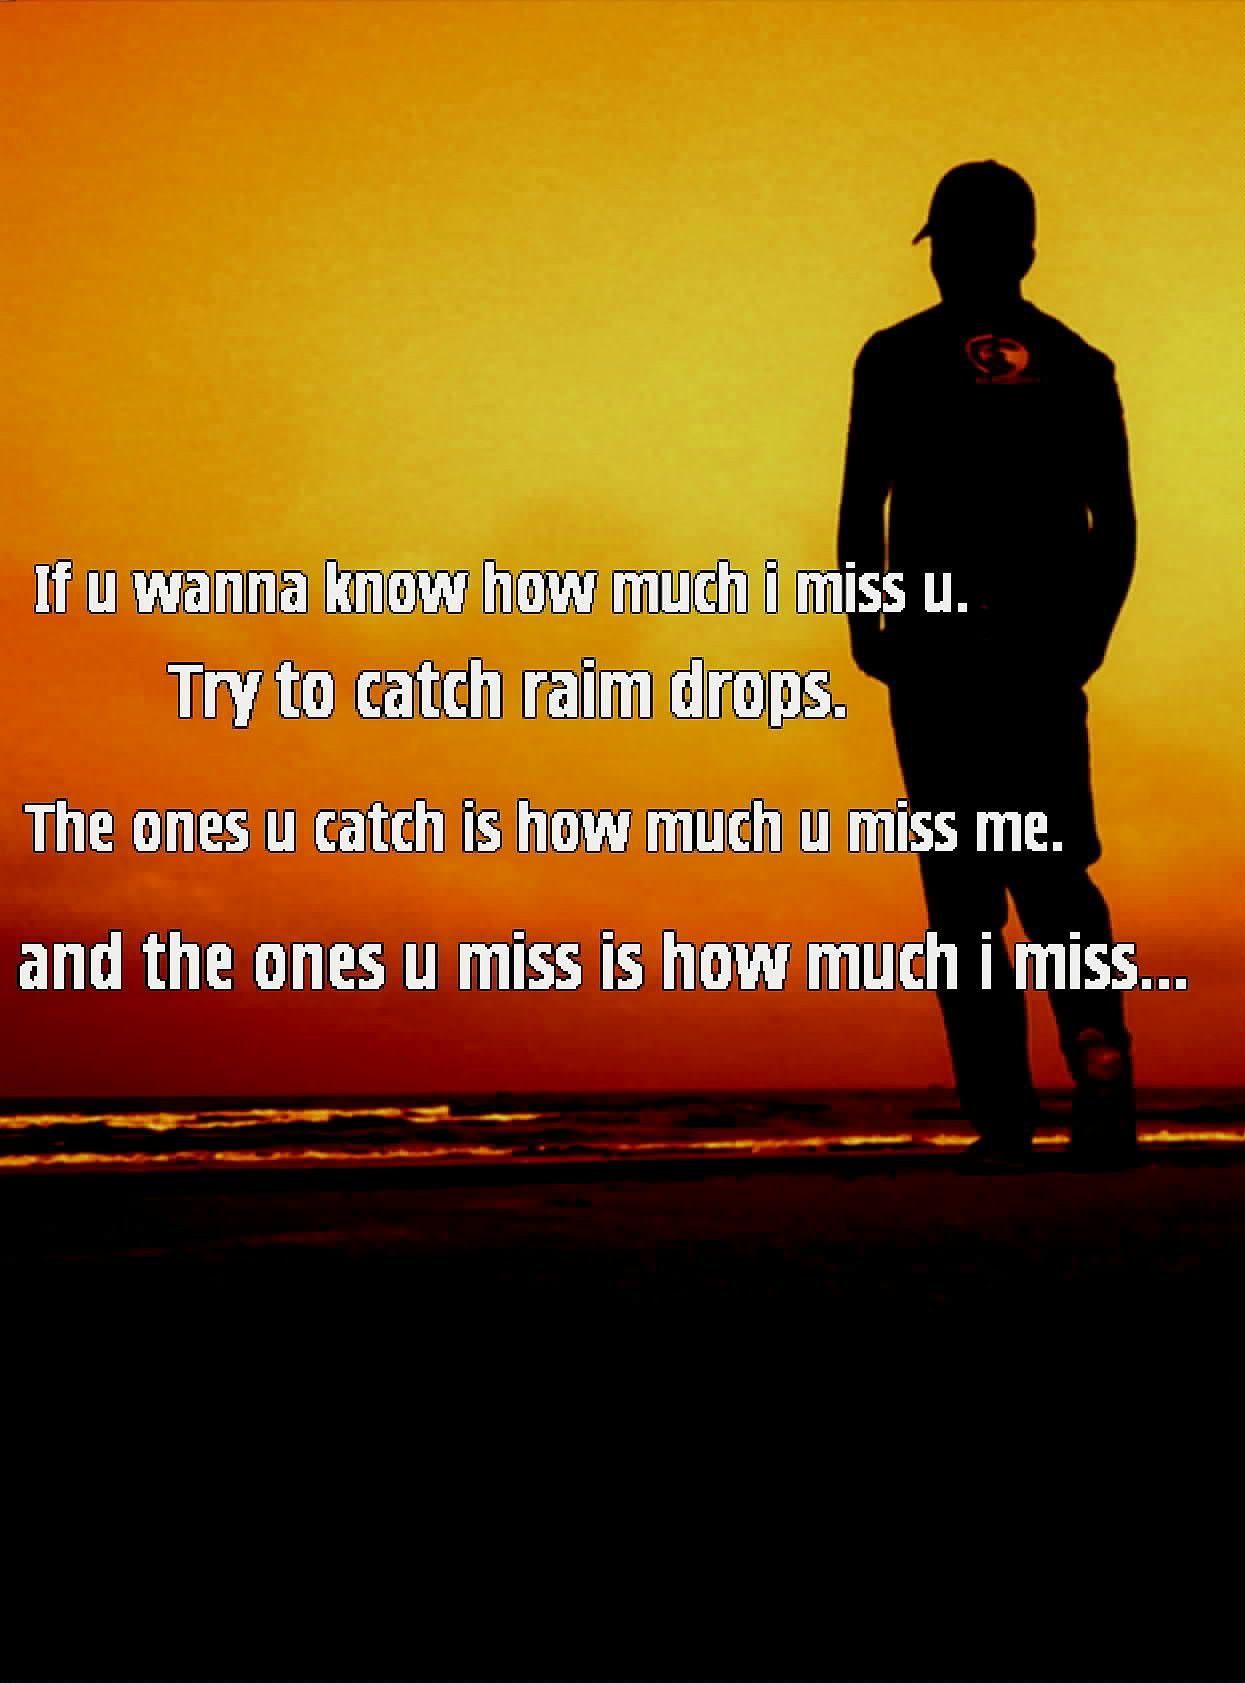 i miss our conversations i miss how we used to talk every minute of every day and how i was able to tell you everything that was on my mind